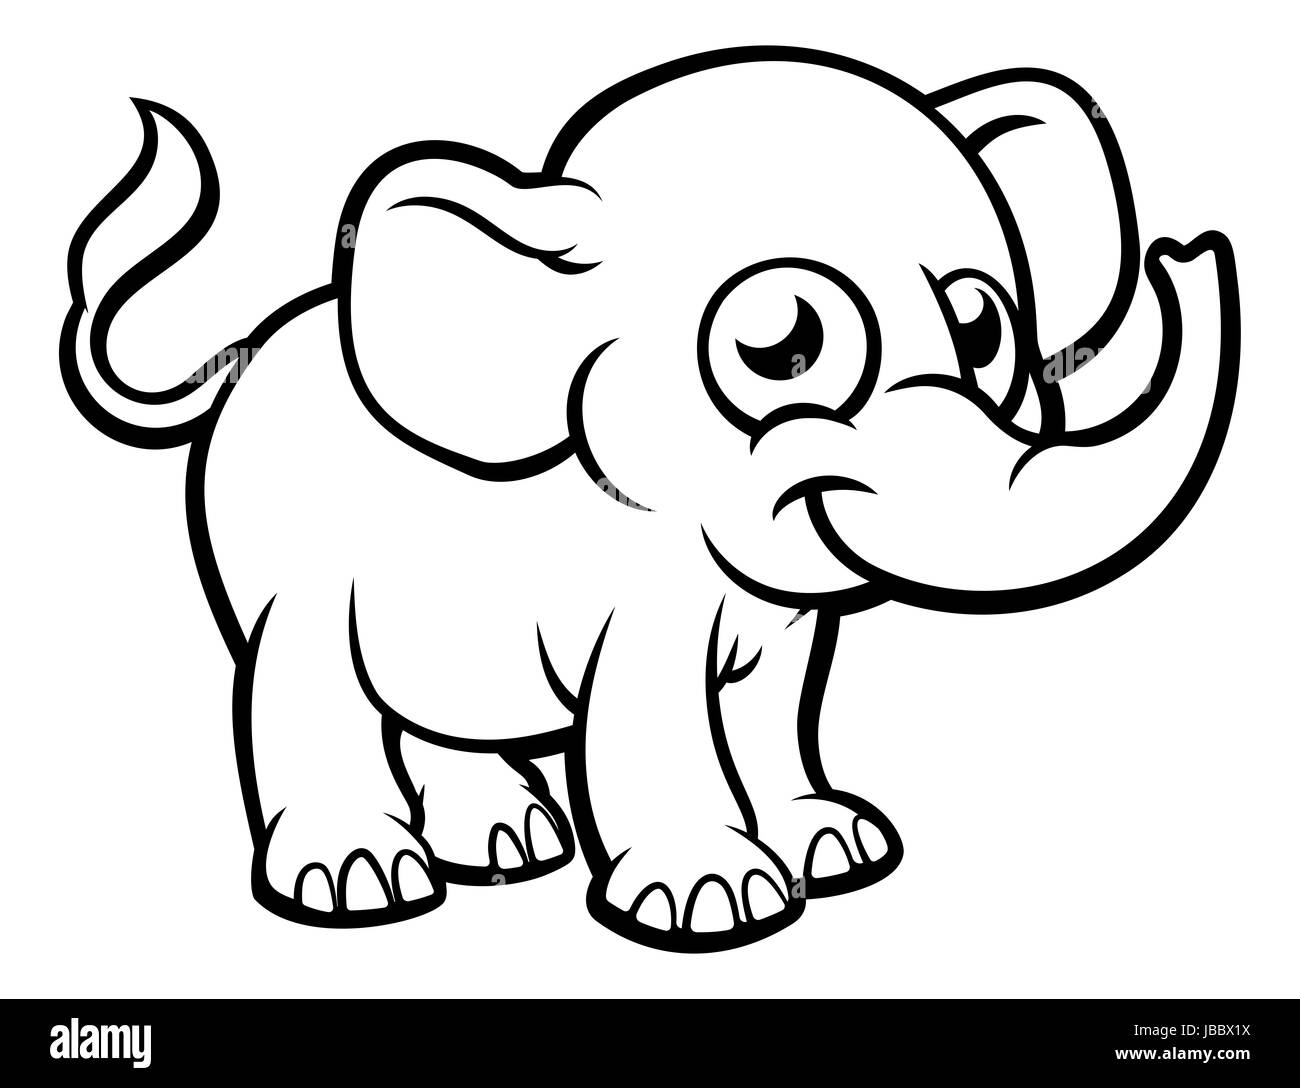 an elephant cartoon character outline coloring illustration - Outline Cartoon Pictures